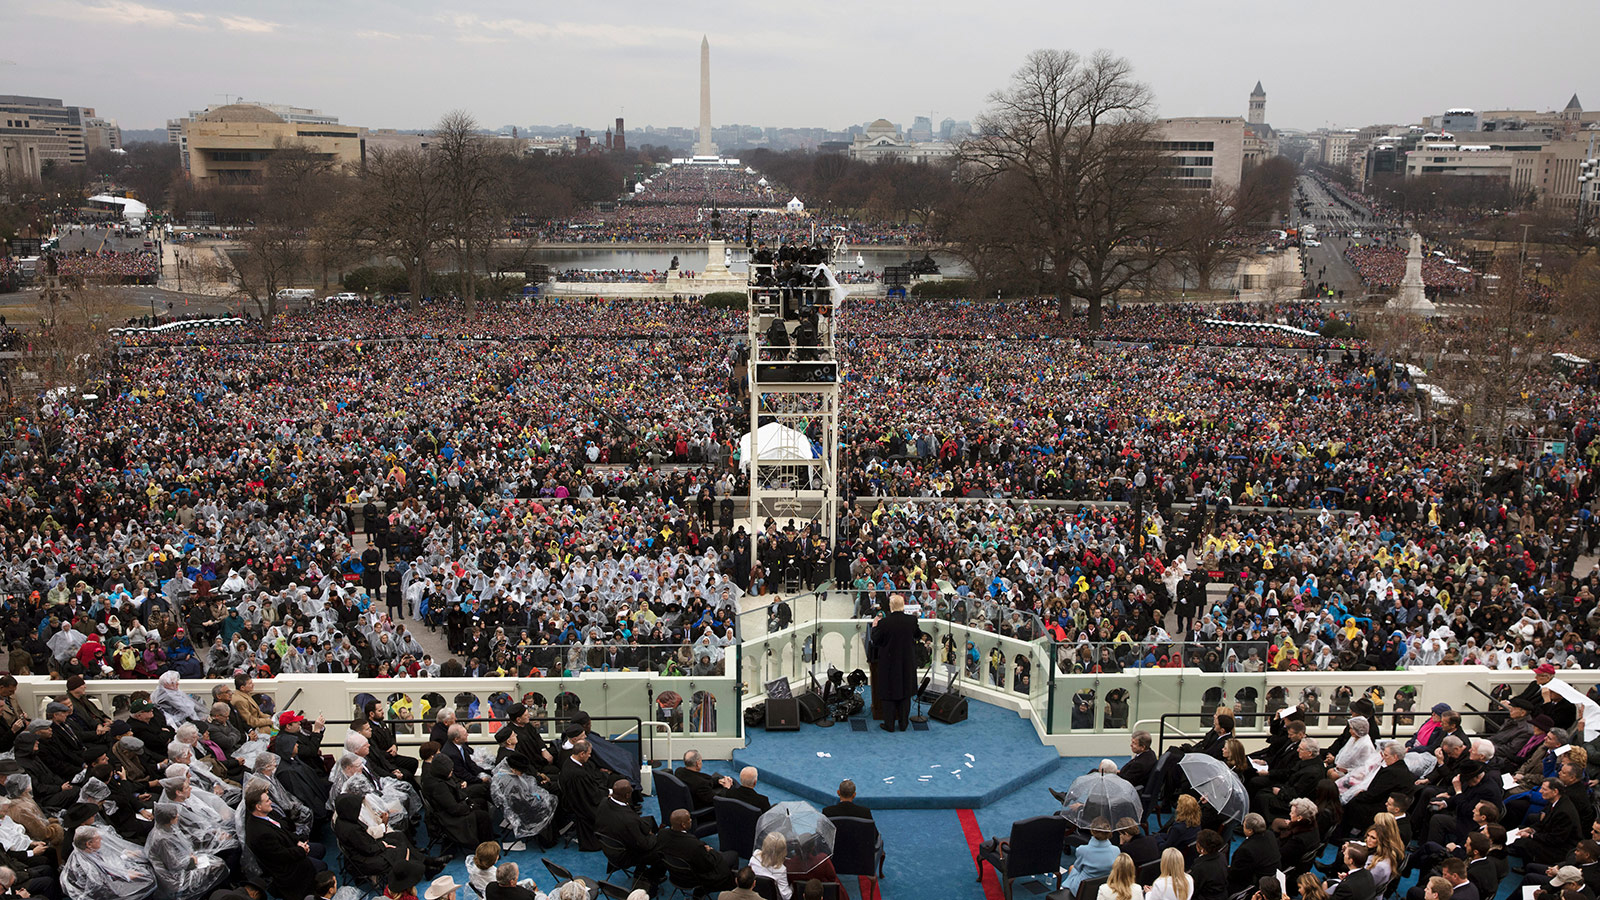 what-we-won't-see-at-this-inauguration